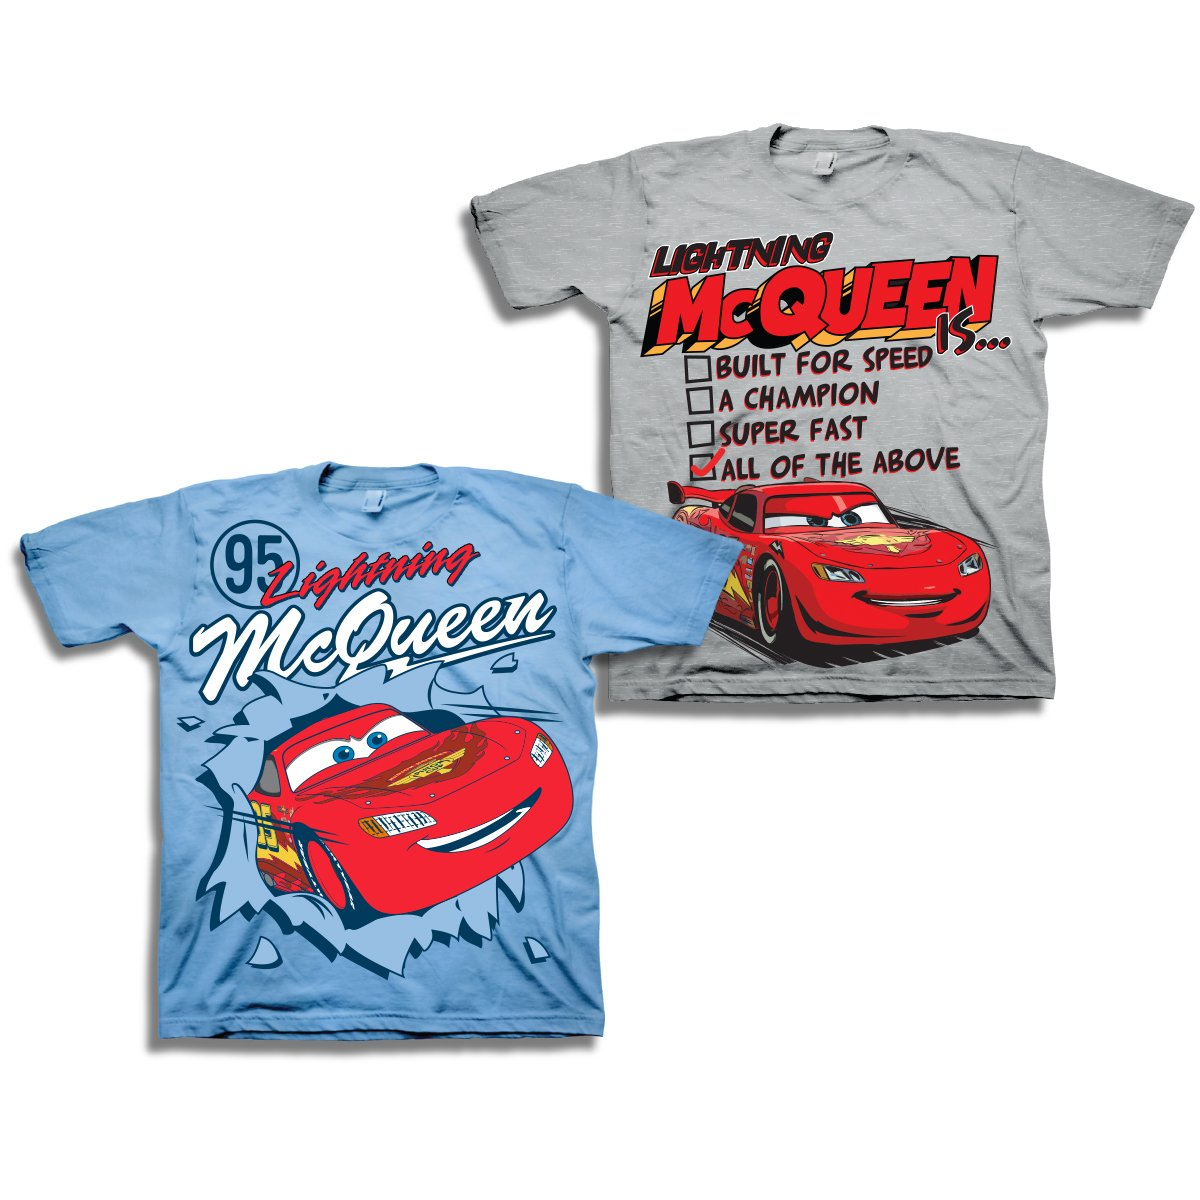 Disney Boys Cars Lightning McQueen Shirt - 2 Pack of Lightning McQueen Tees (Grey/Light Blue, 3T)